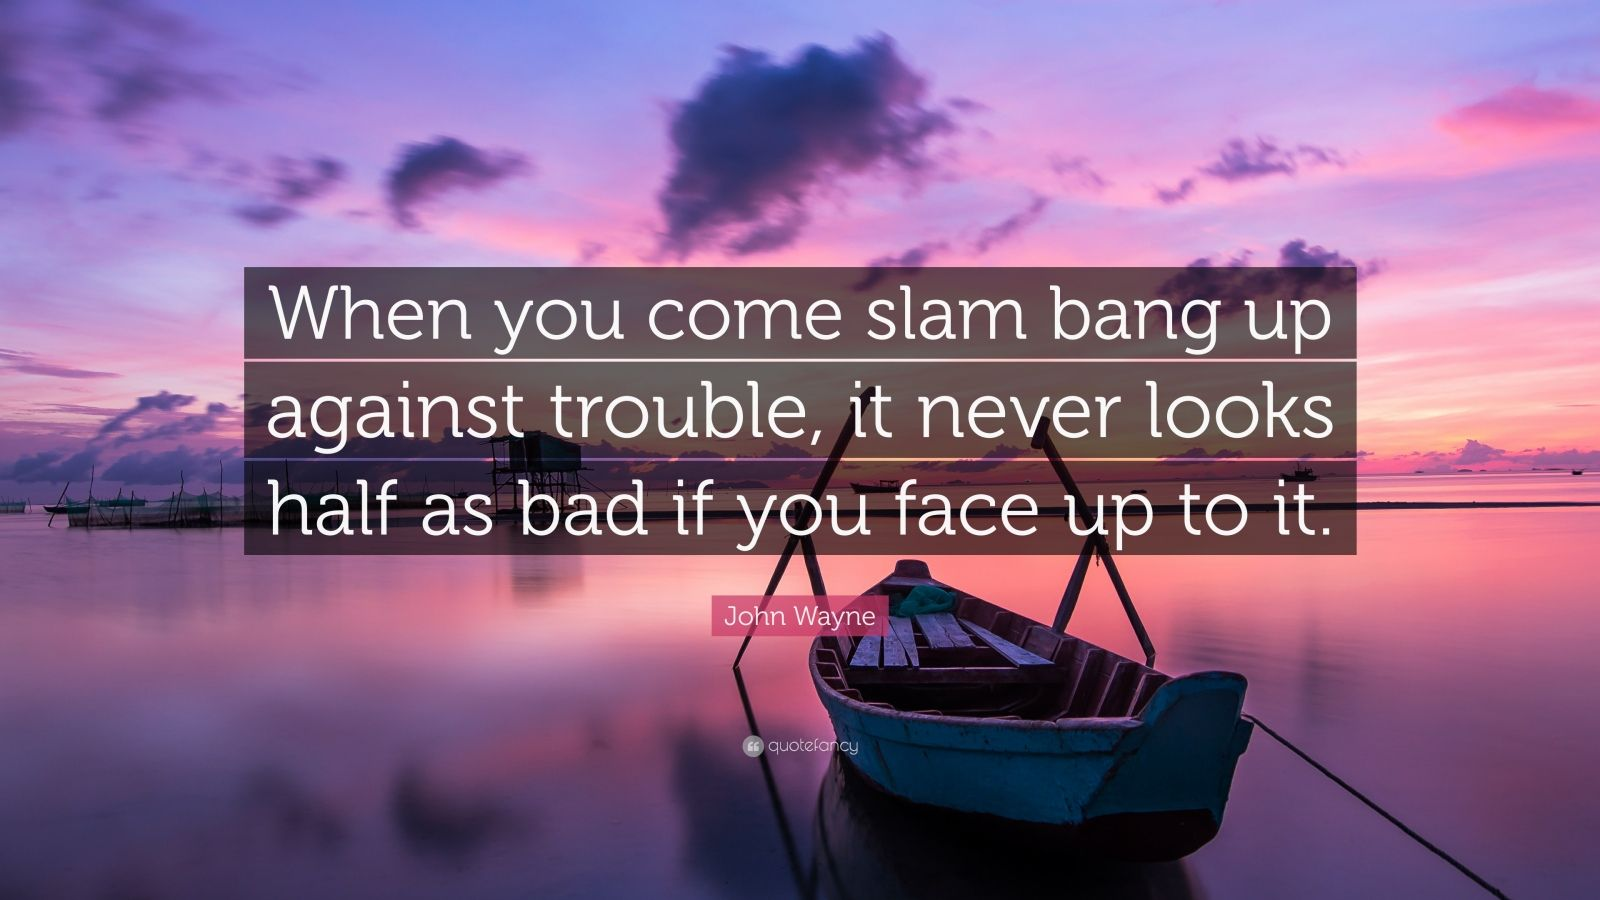 """John Wayne Quote: """"When you come slam bang up against trouble, it never looks half as bad if you face up to it."""""""